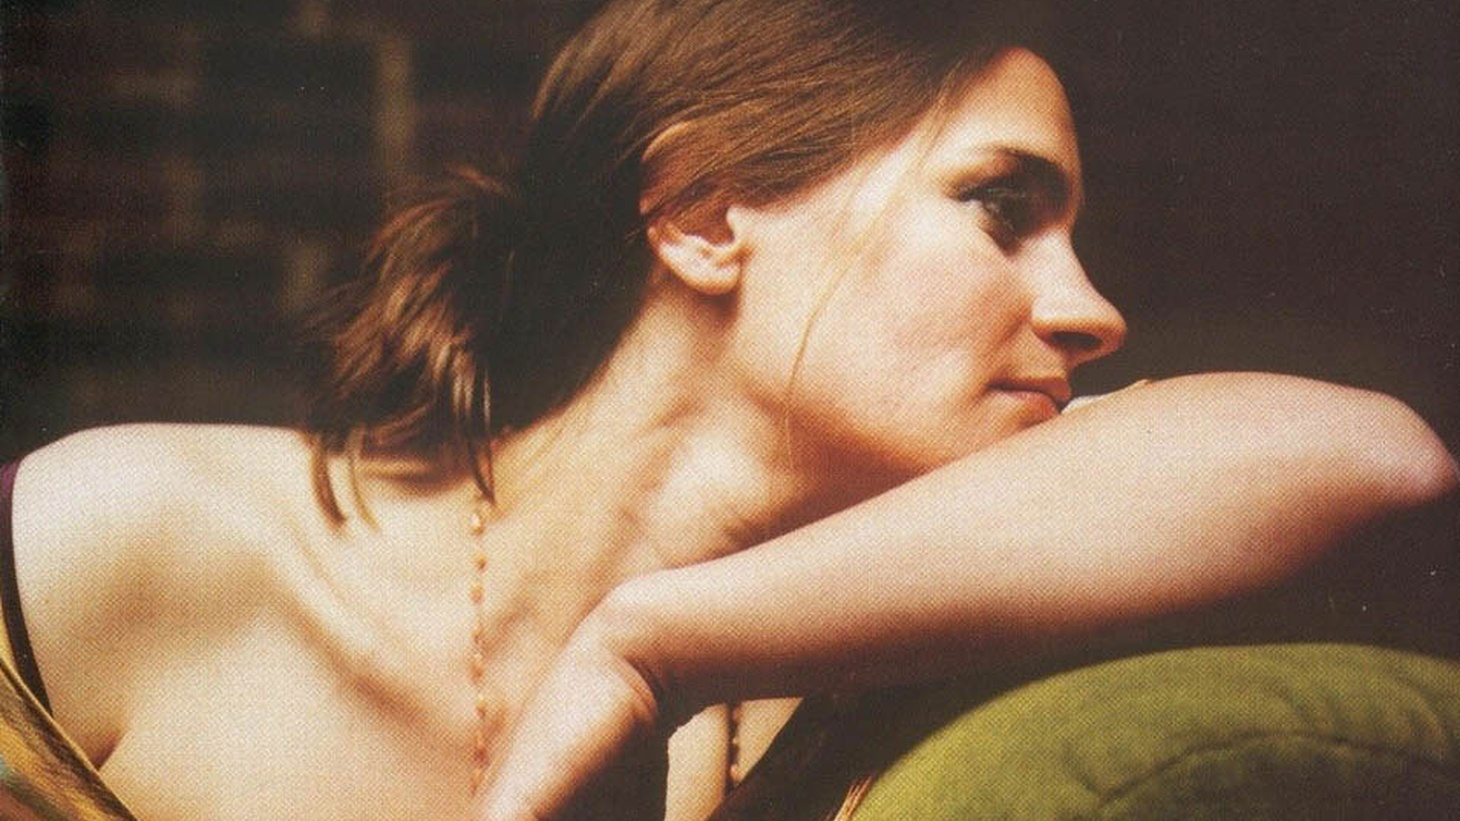 Divine singer Madeleine Peyroux mixes covers from Tom Waits and Serge Gainsbourg as well as her own songs on Morning Becomes Eclectic at 11:15am.